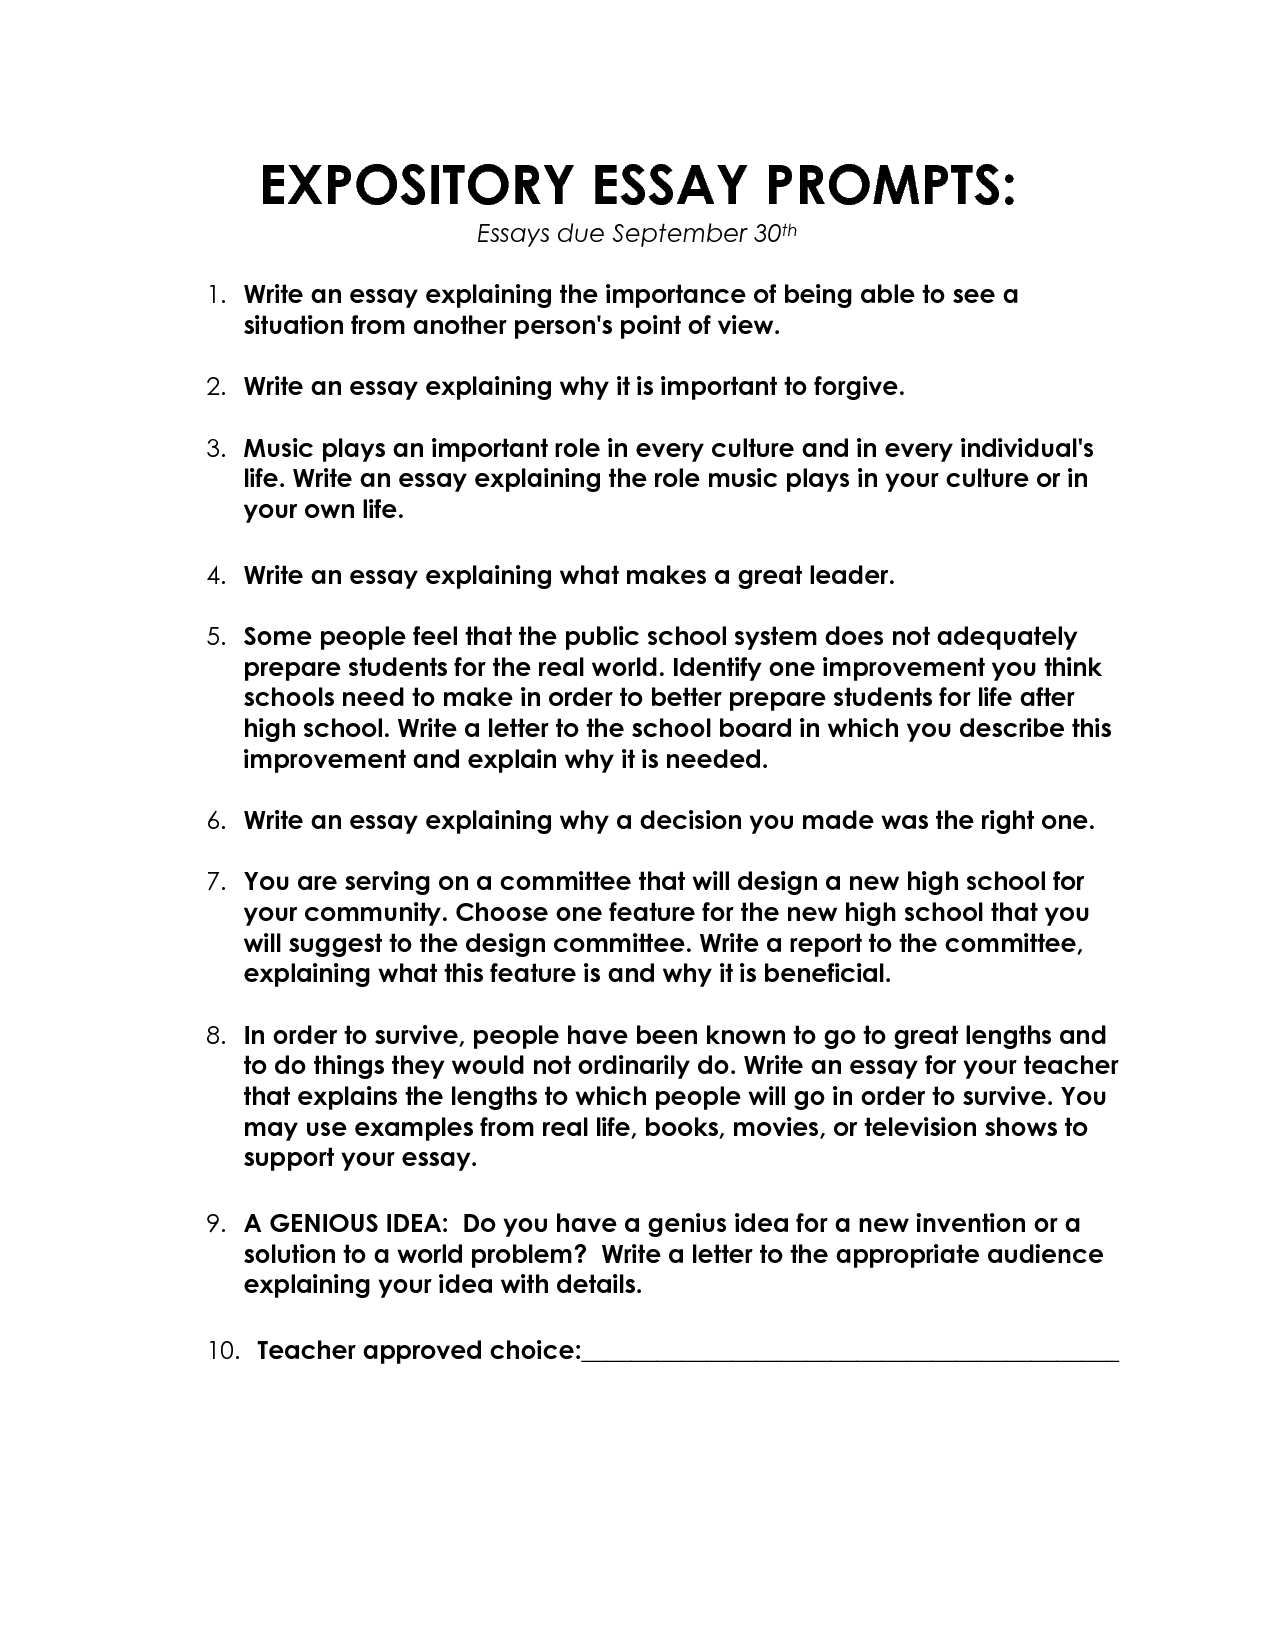 003 Expository Essay Topics Writings And Essays Explanatory For High Rega Things To Help You Write An Awesome 4th Grade Prompt School Prompts 7th Full